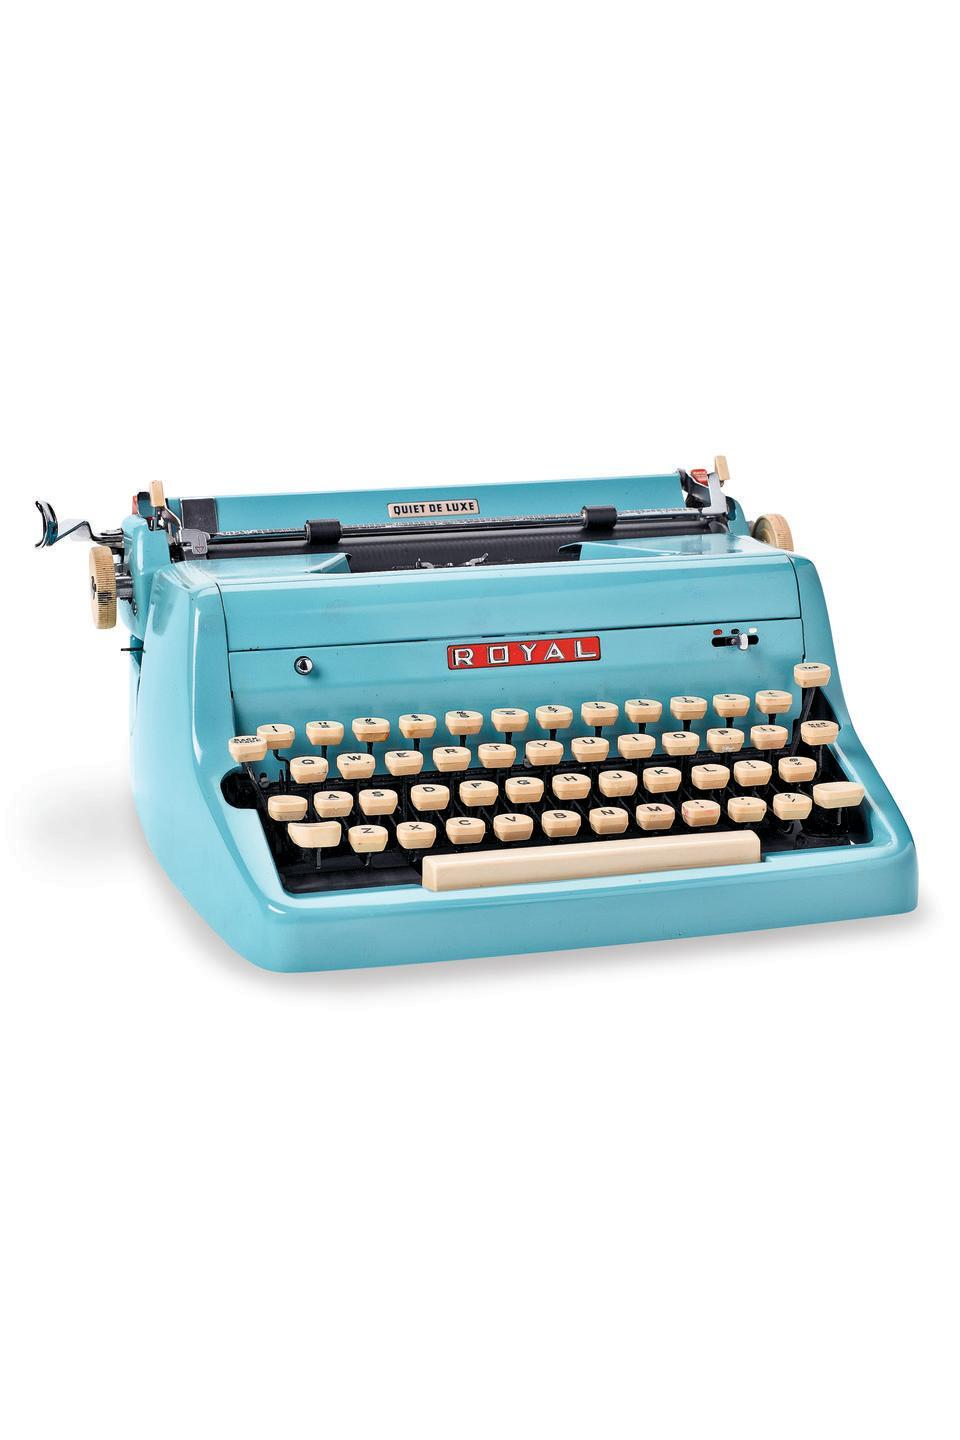 """<p><strong>What it was worth (2006):</strong> $350</p><p><strong>What it's worth now:</strong> $350</p><p>After many ownership and business changes, Royal Typewriter Company is now known as Royal Consumer Information Products Inc., and <a href=""""https://www.ebay.com/itm/Royal-Manual-Typewriter-Model-HHE-5524521/162443295499"""" rel=""""nofollow noopener"""" target=""""_blank"""" data-ylk=""""slk:still produces computer products"""" class=""""link rapid-noclick-resp"""">still produces computer products</a> today.</p>"""